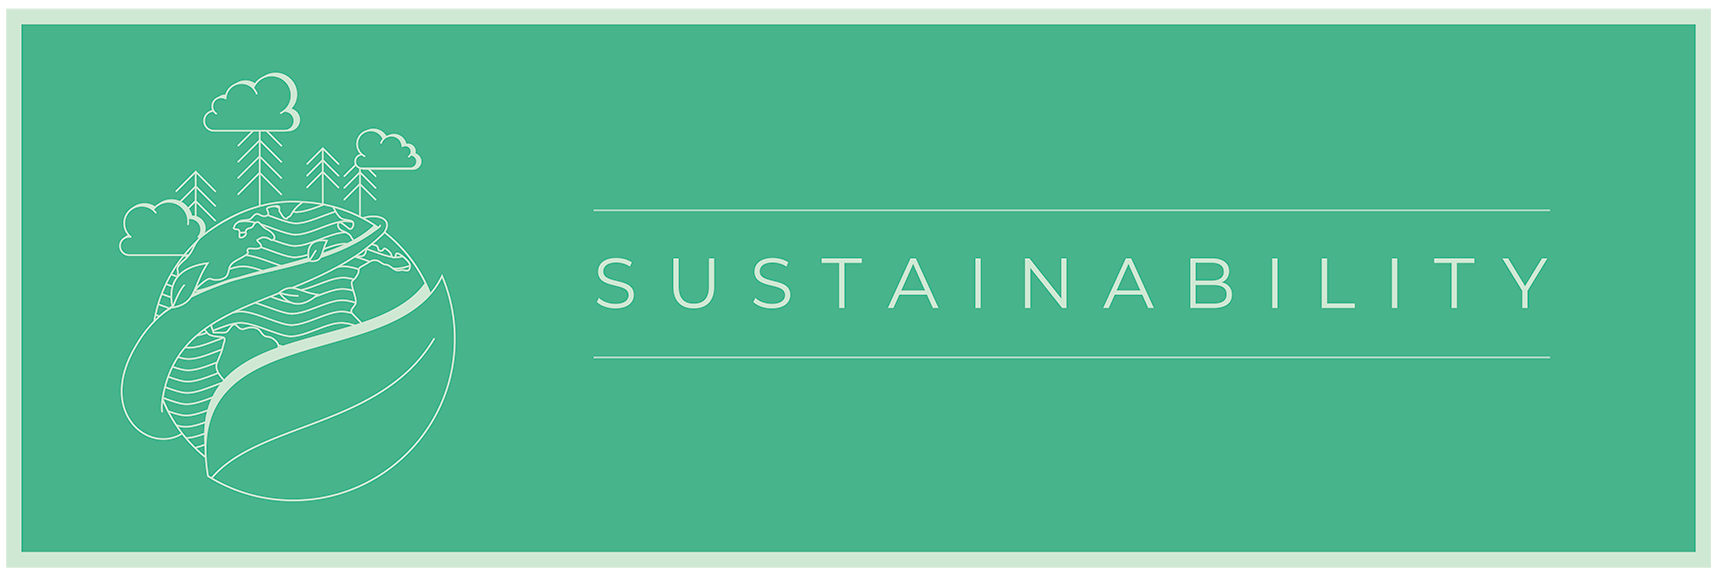 Tallahassee is a sustainable city.